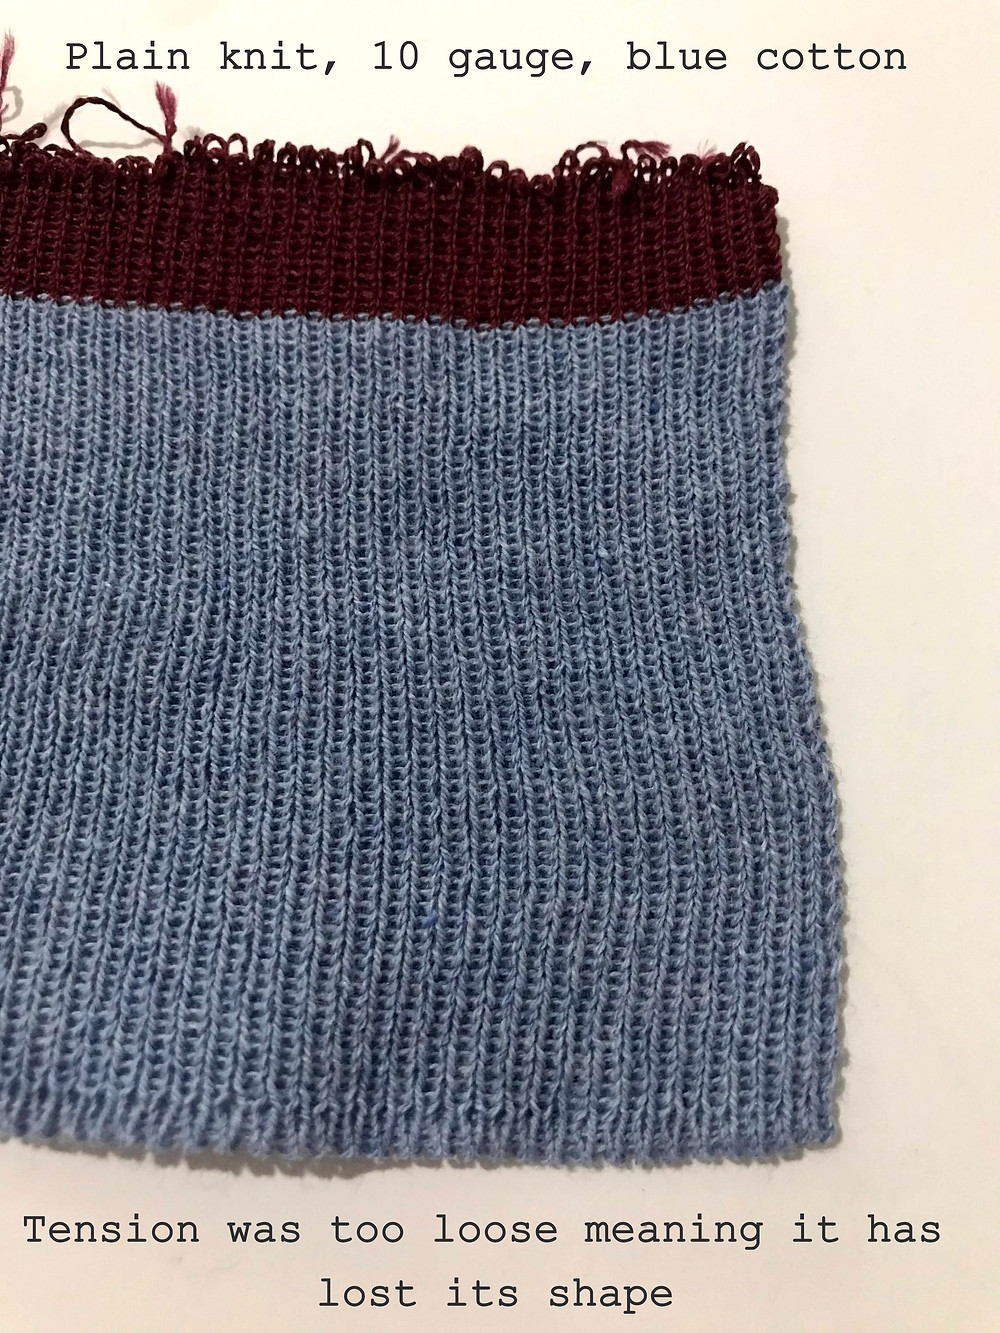 Blue cotton, plain knit, 10 gauge. I think my tension was too loose which caused it to loose its shape.